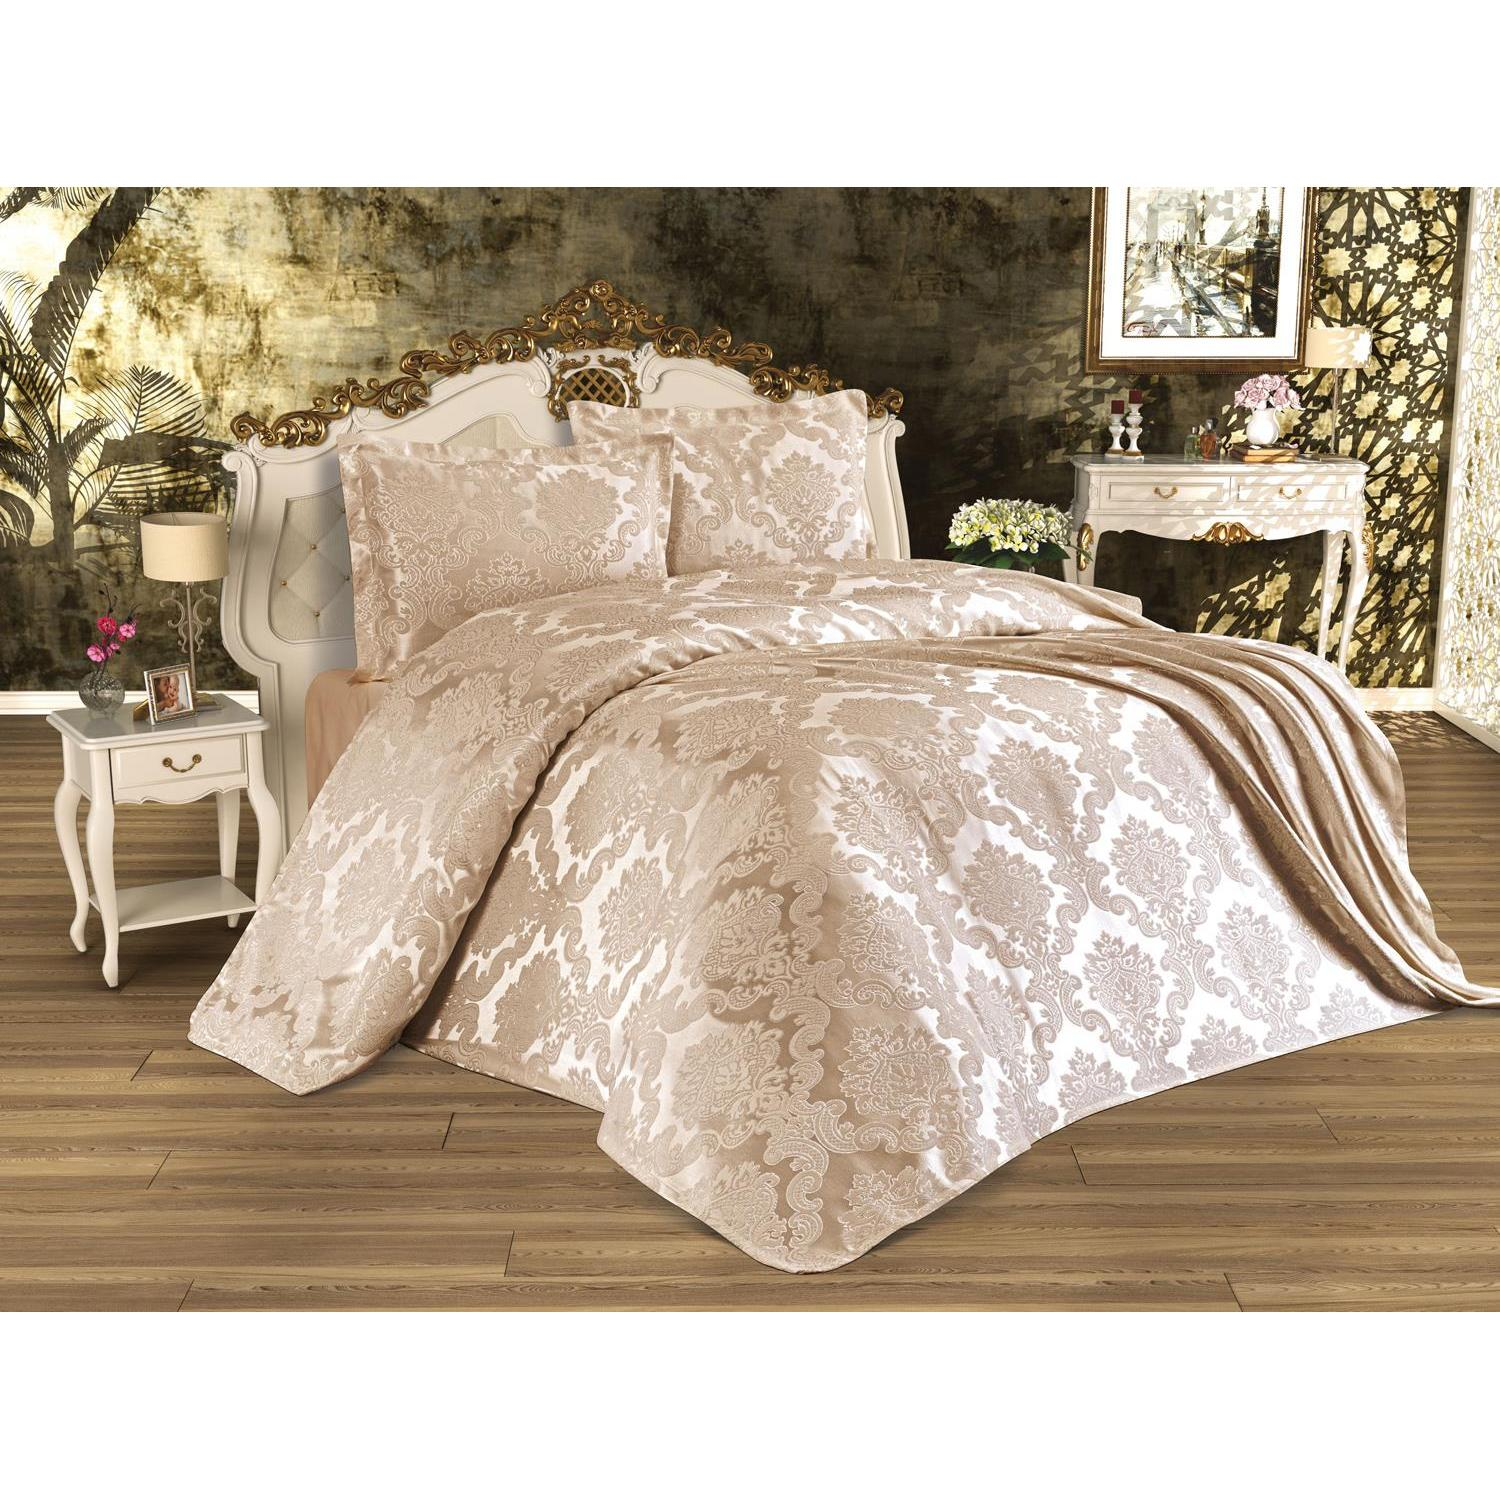 Busem Jacquard Chenille Bed Cover Cappucino